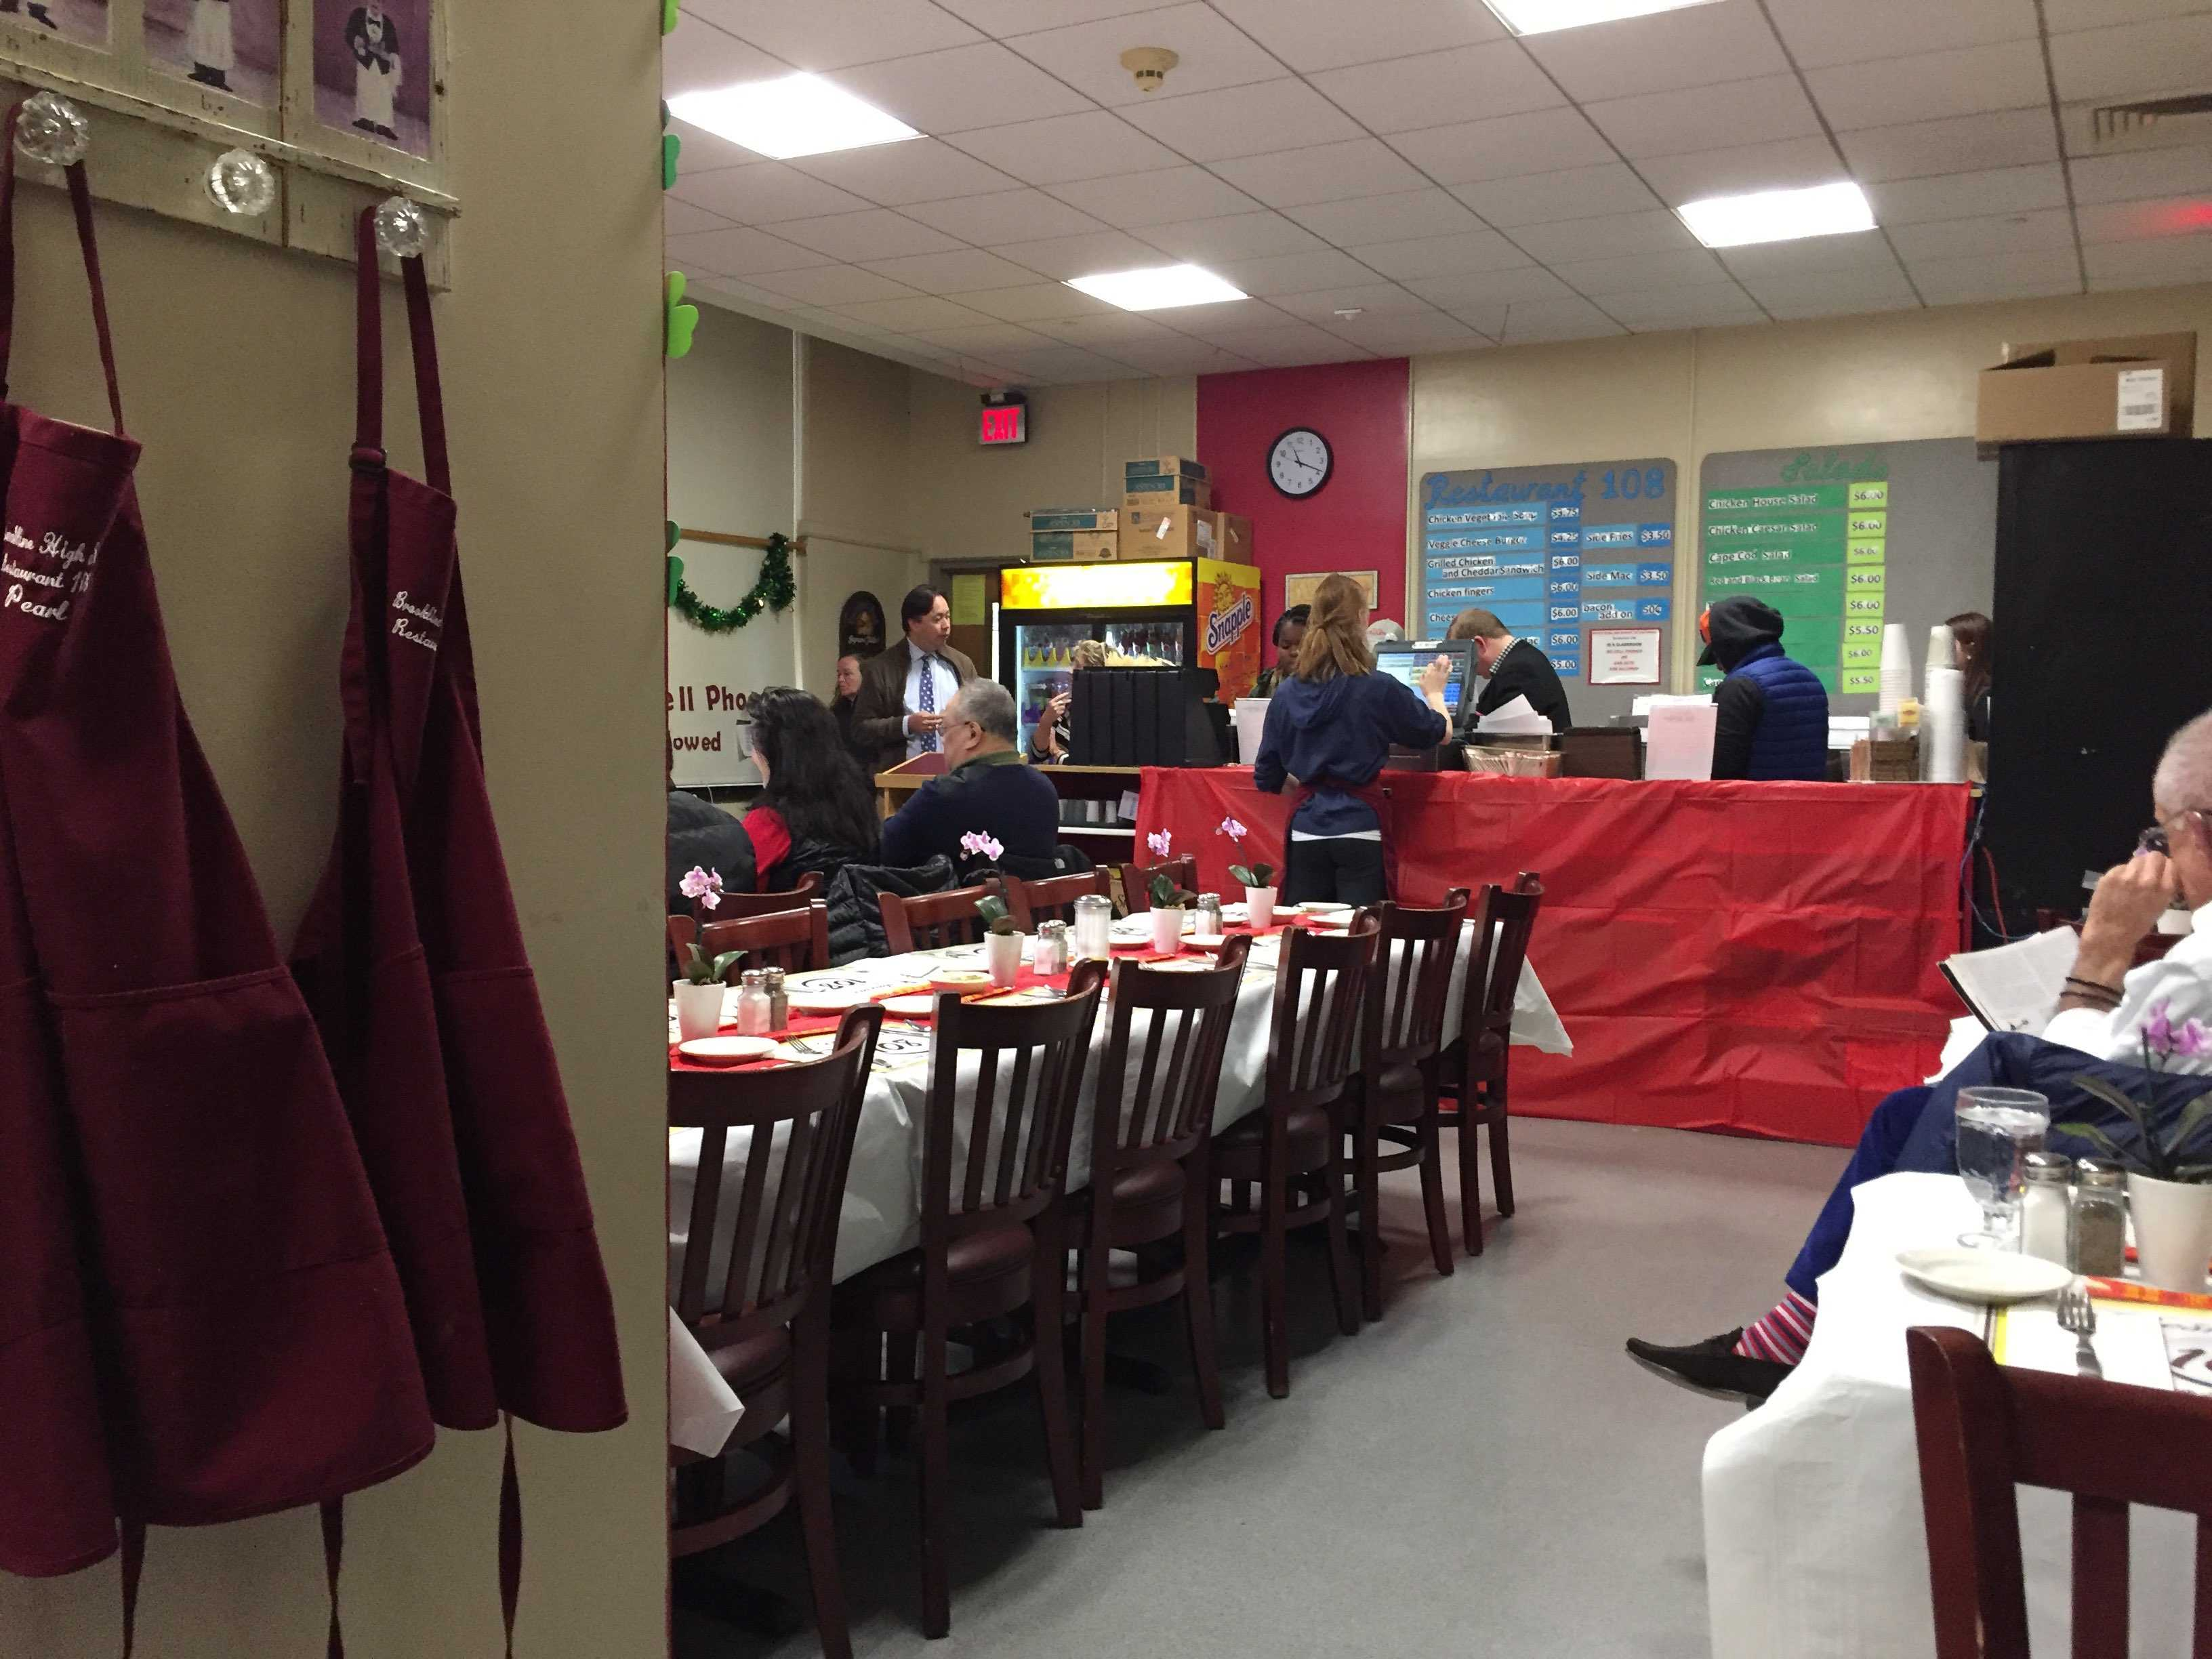 Restaurant 108 holds the first round of its annual Top Chef competition. Chef Alex Chin produced a three course meal inspired by Asian cuisine.